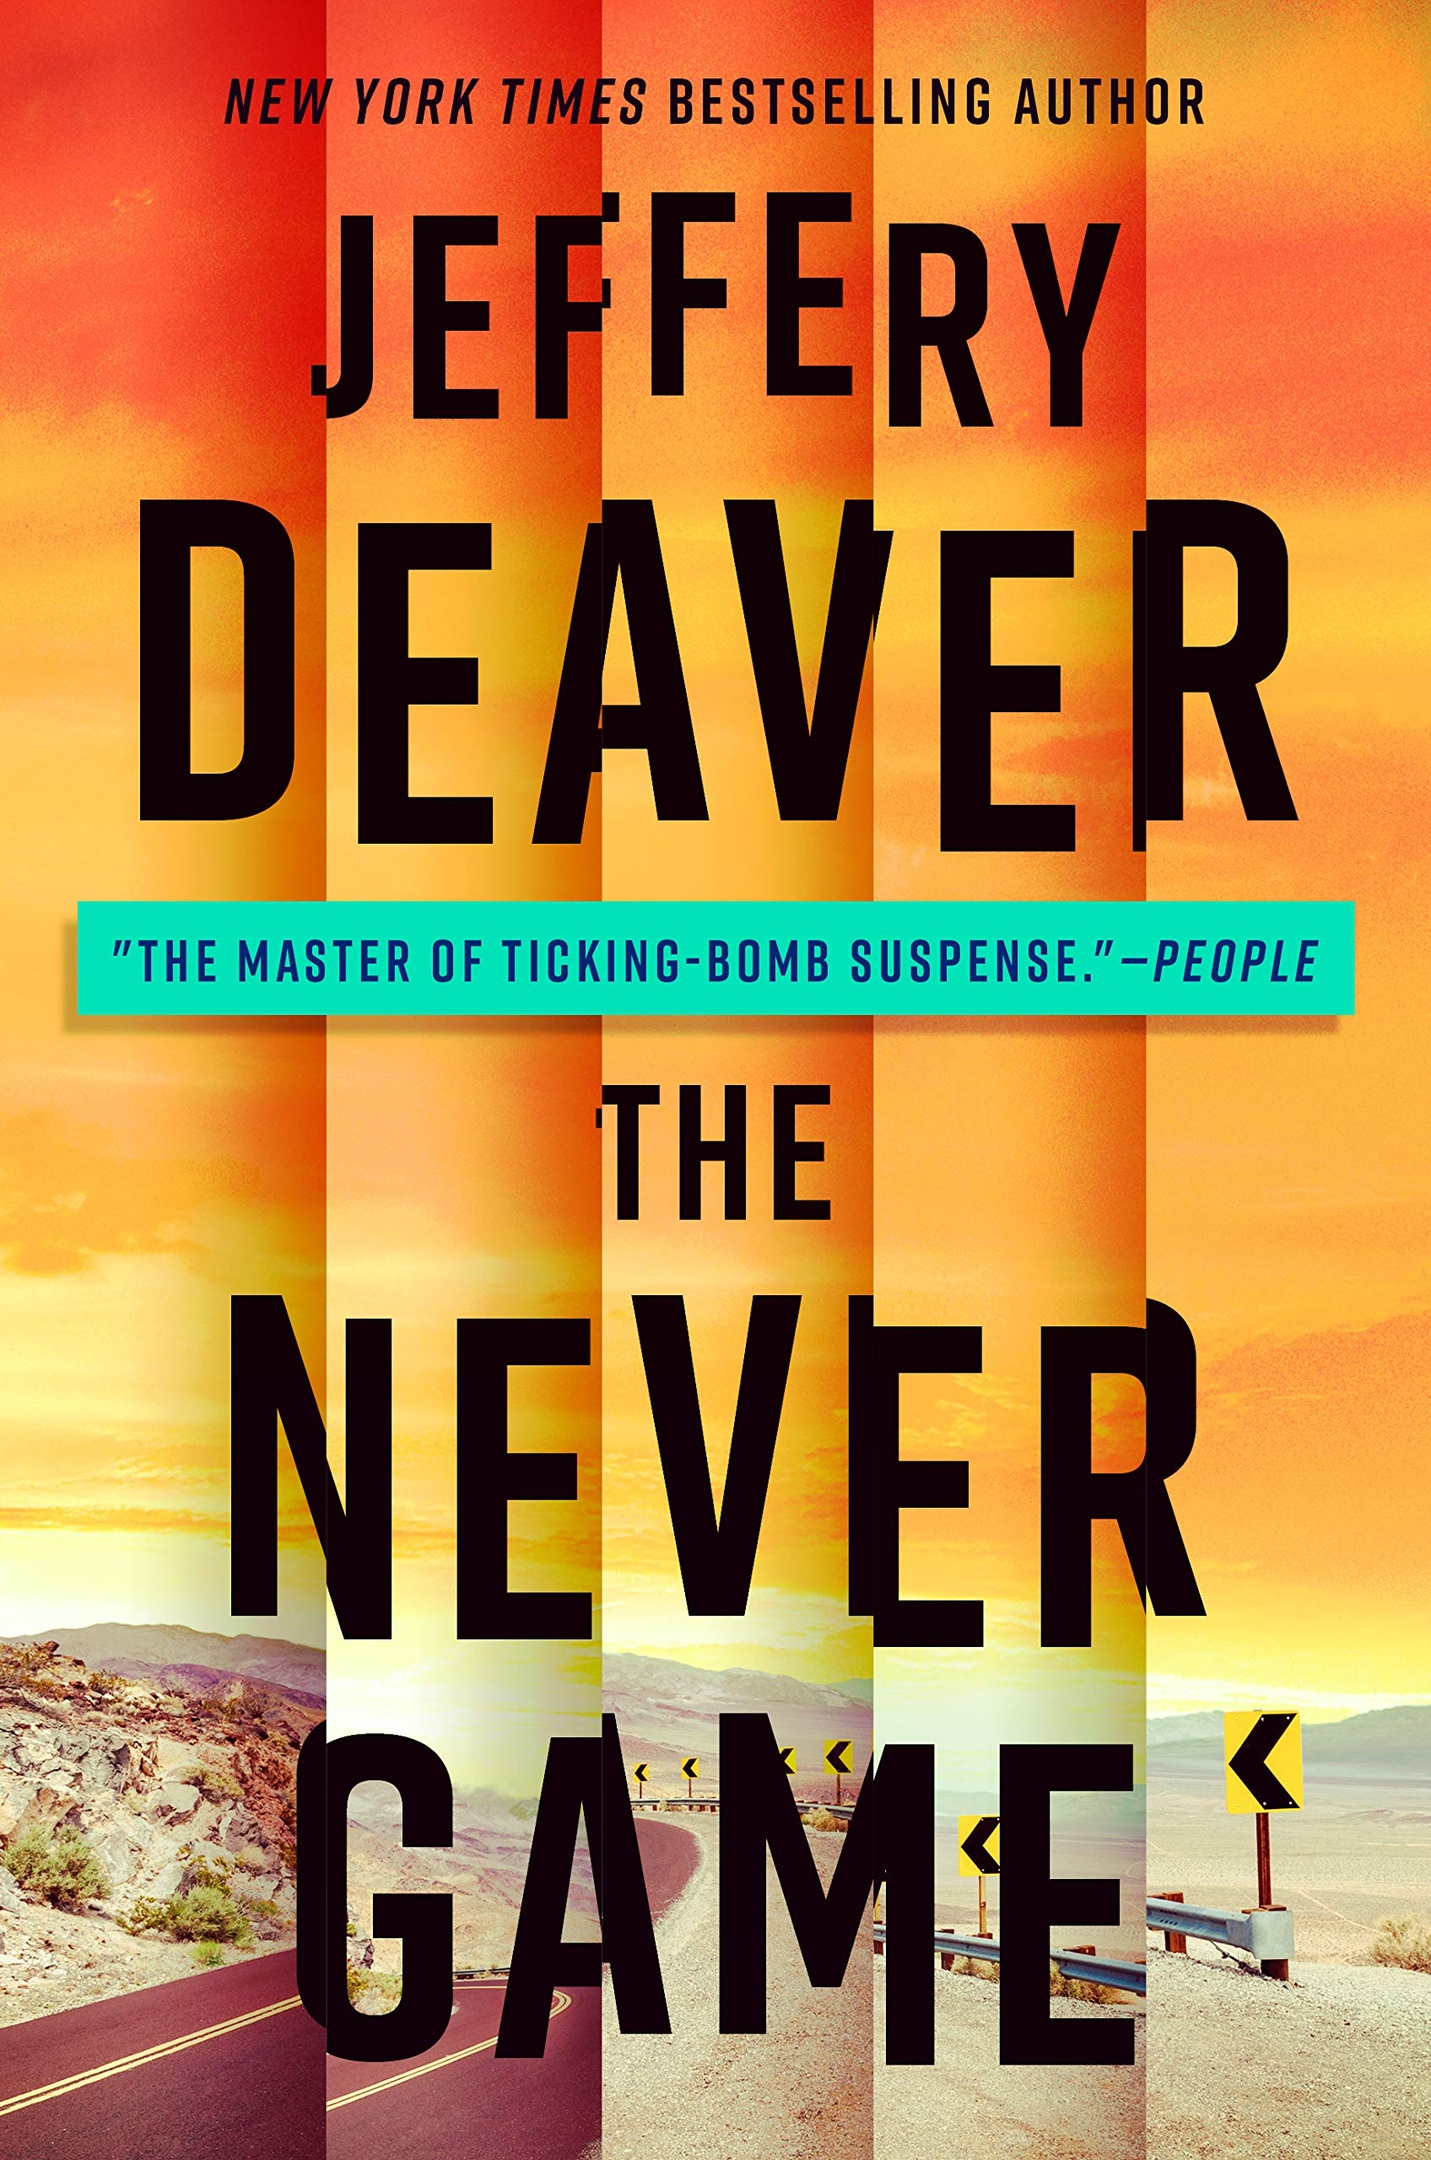 Jeffery Deaver – The Never Game Genre: